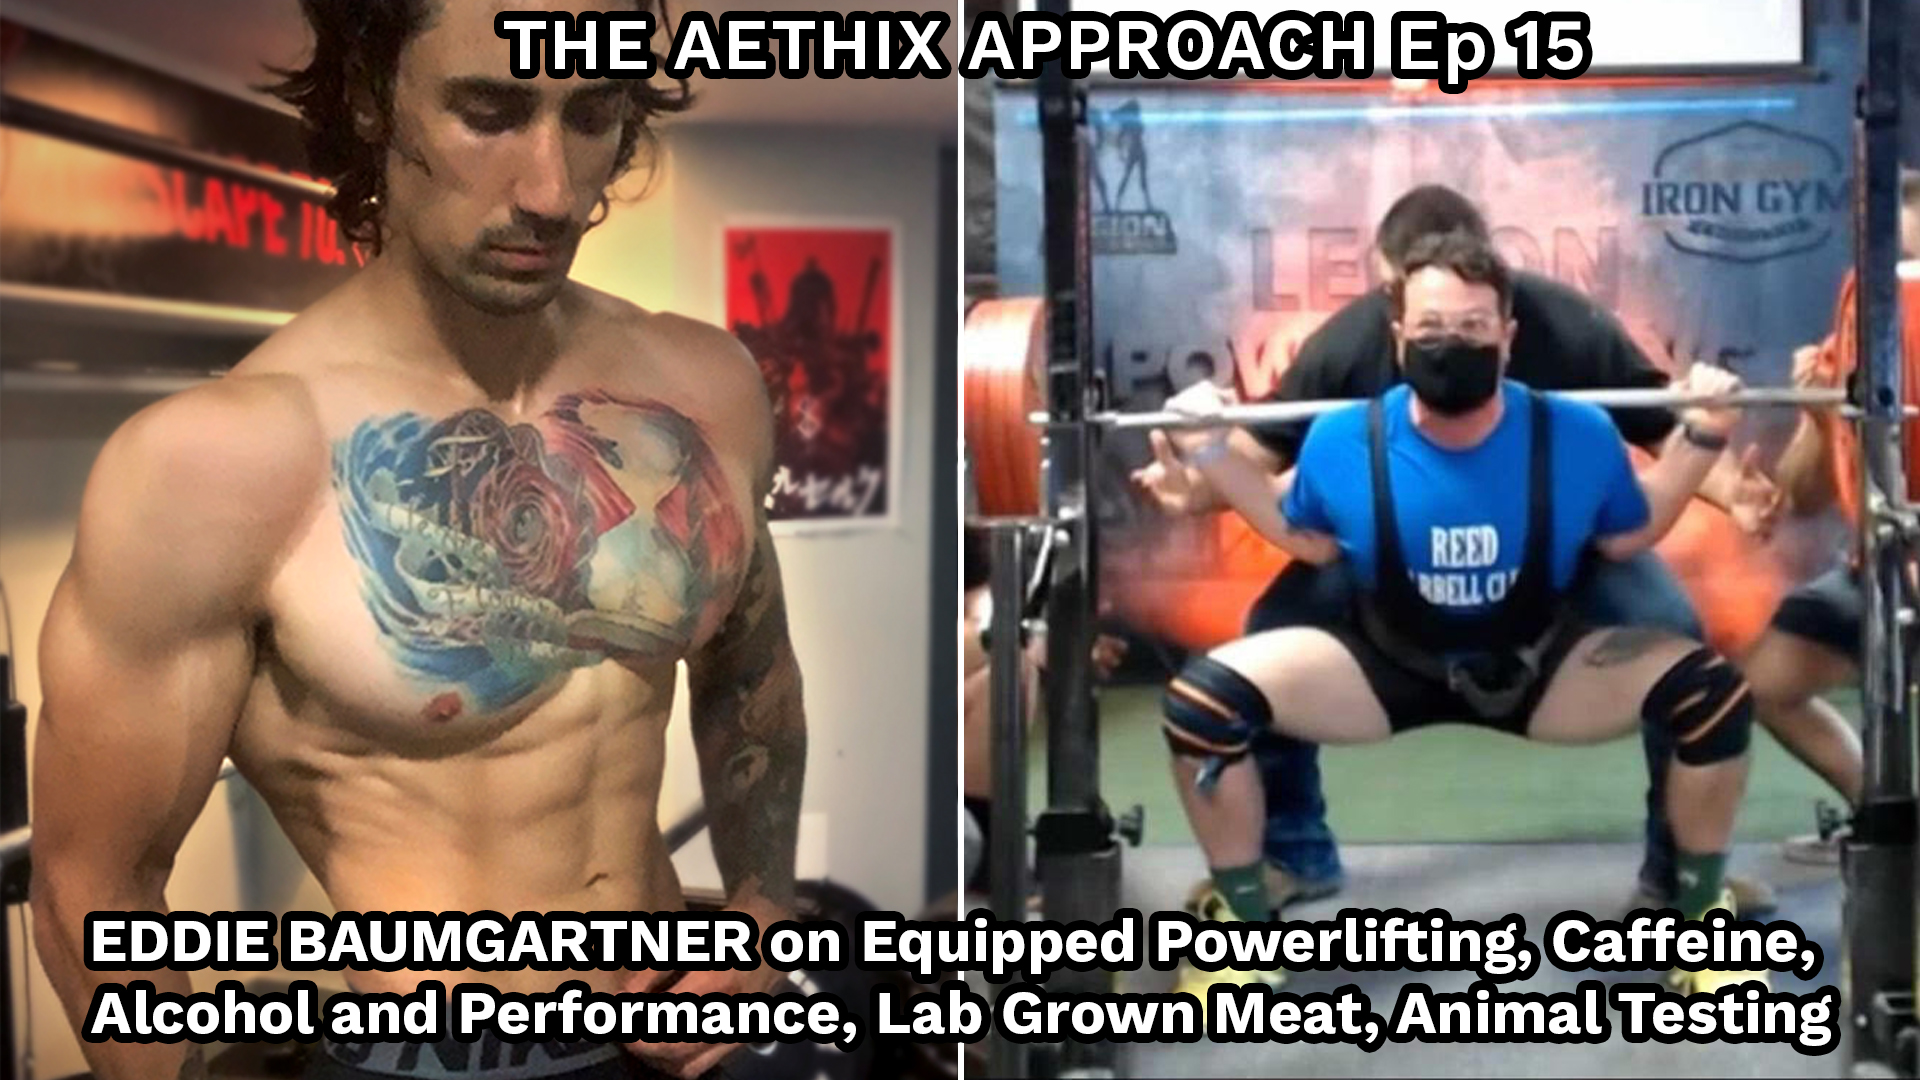 The Aethix Approach 15